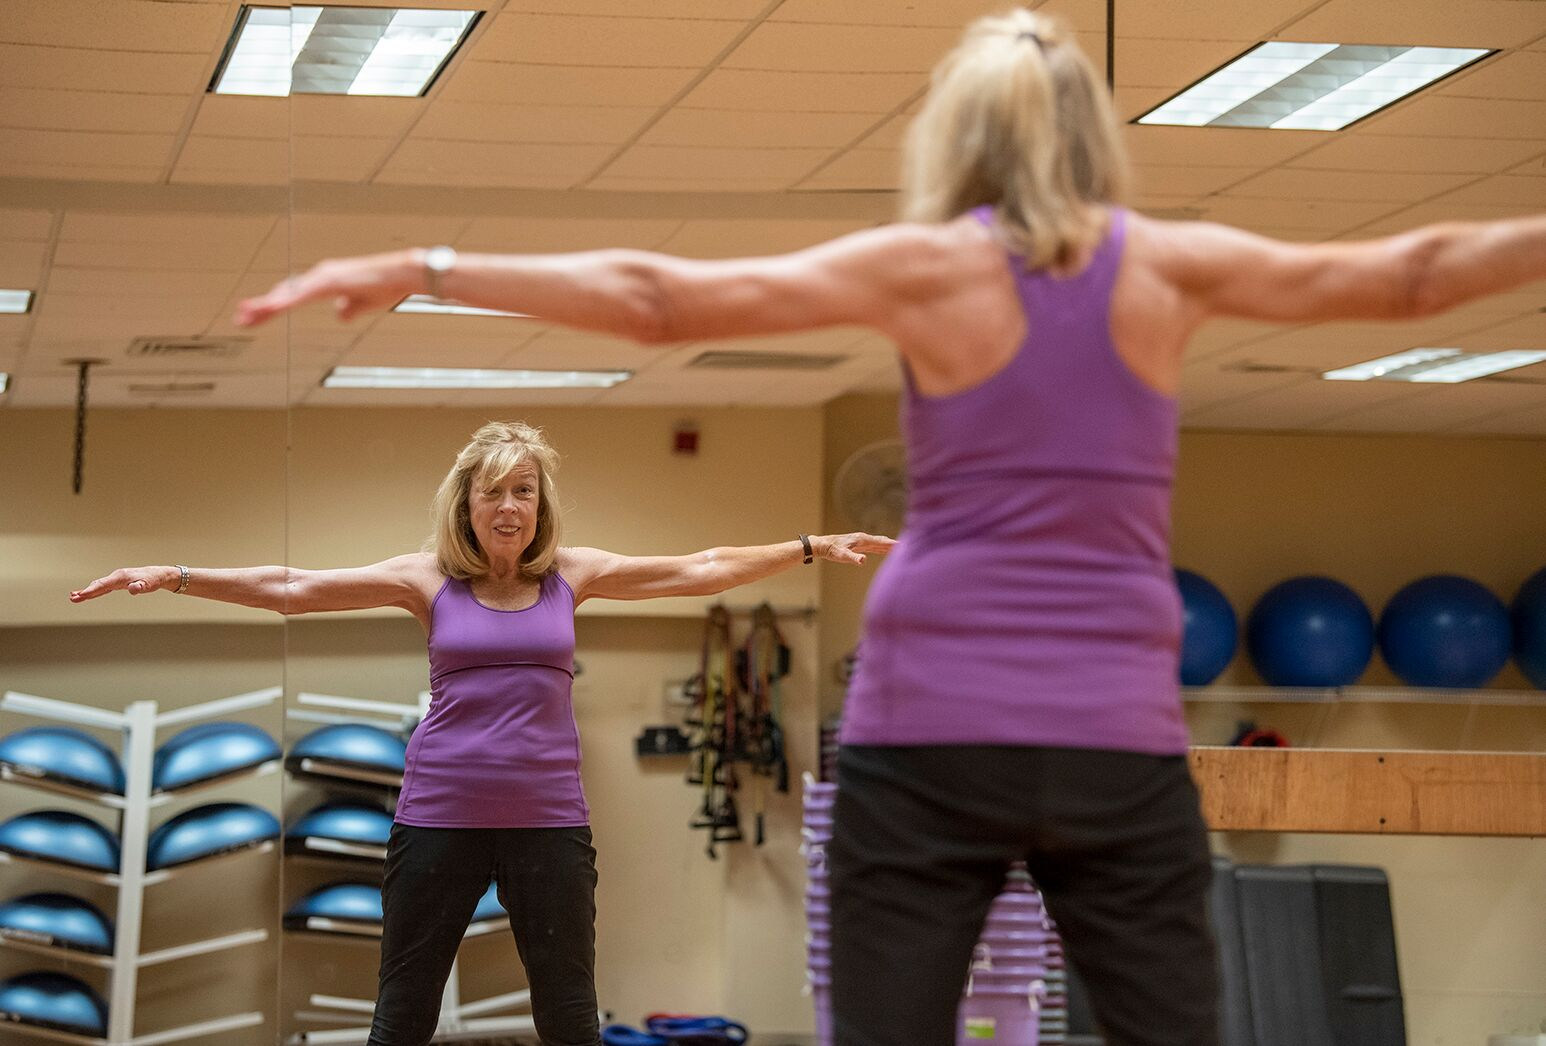 Blonde haired woman in purple tank top and black pants in front of a gym mirror.